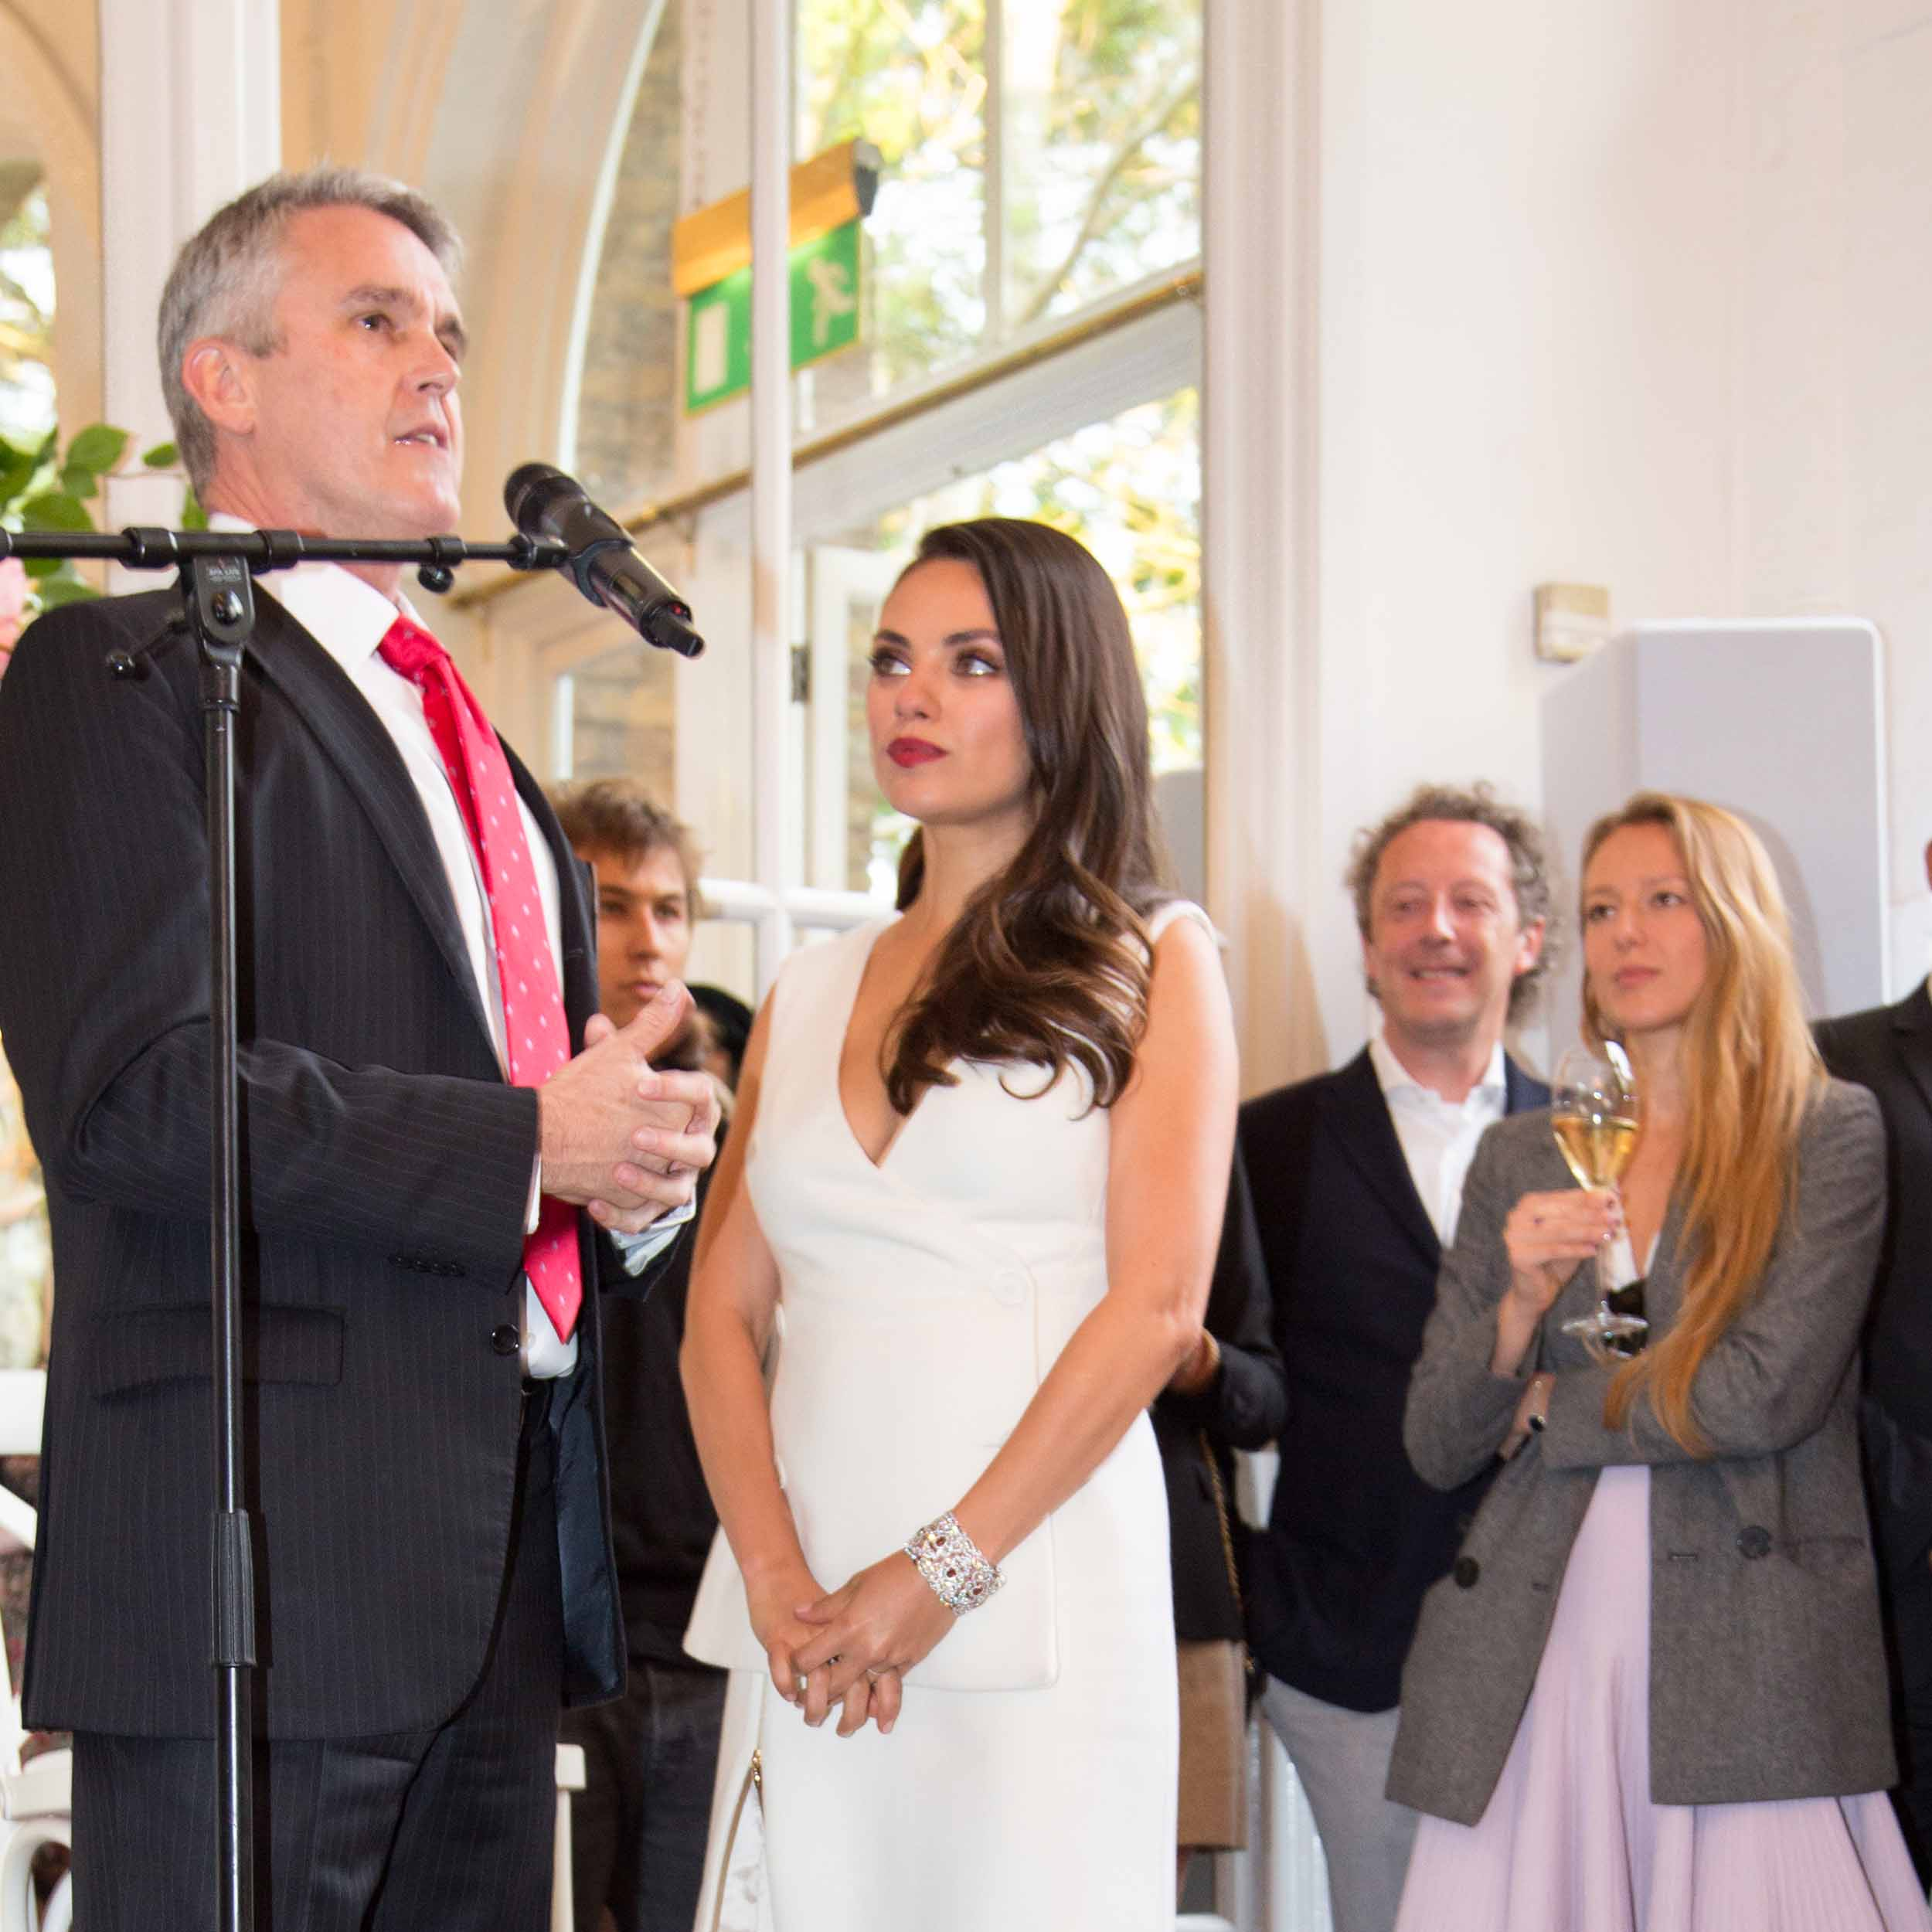 MILA KUNIS, THE FACE OF GEMFIELDS, SHINES AT RUBY LAUNCH: THE ORANGERY, HOLLAND PARK LONDON